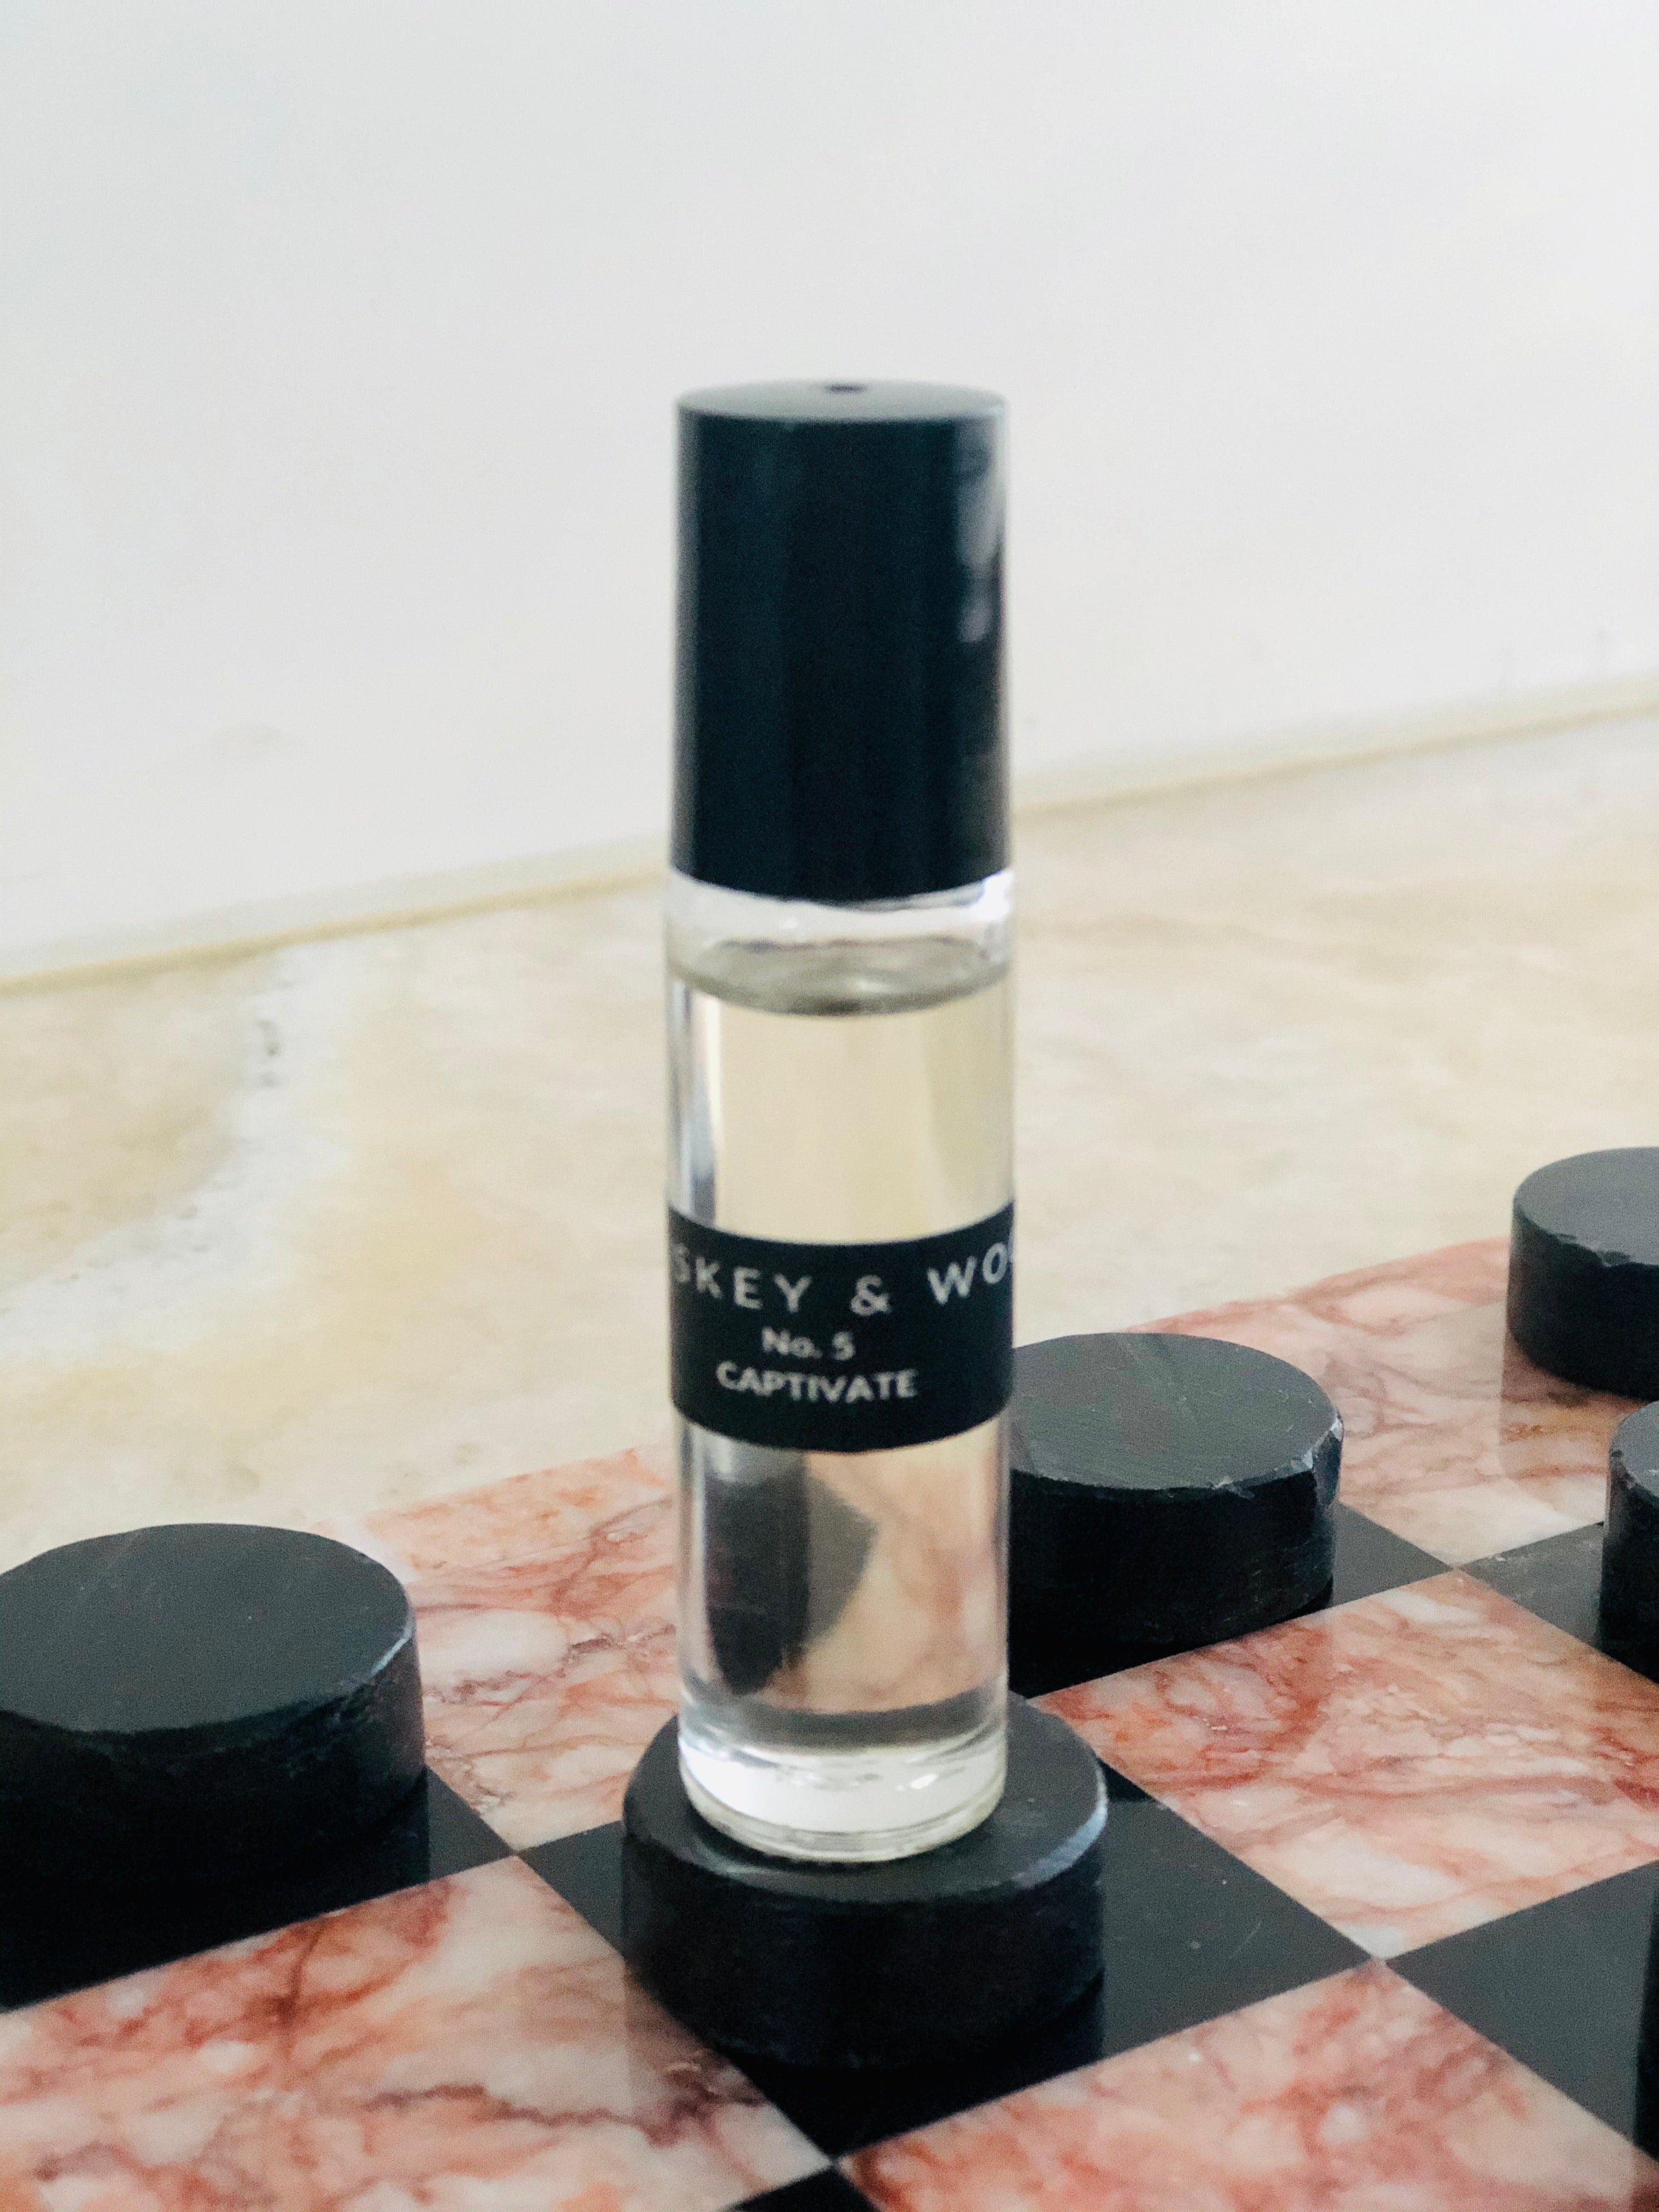 No. 5 CAPTIVATE: Leather & Vetiver Roll-on Essential Oil Fragrance